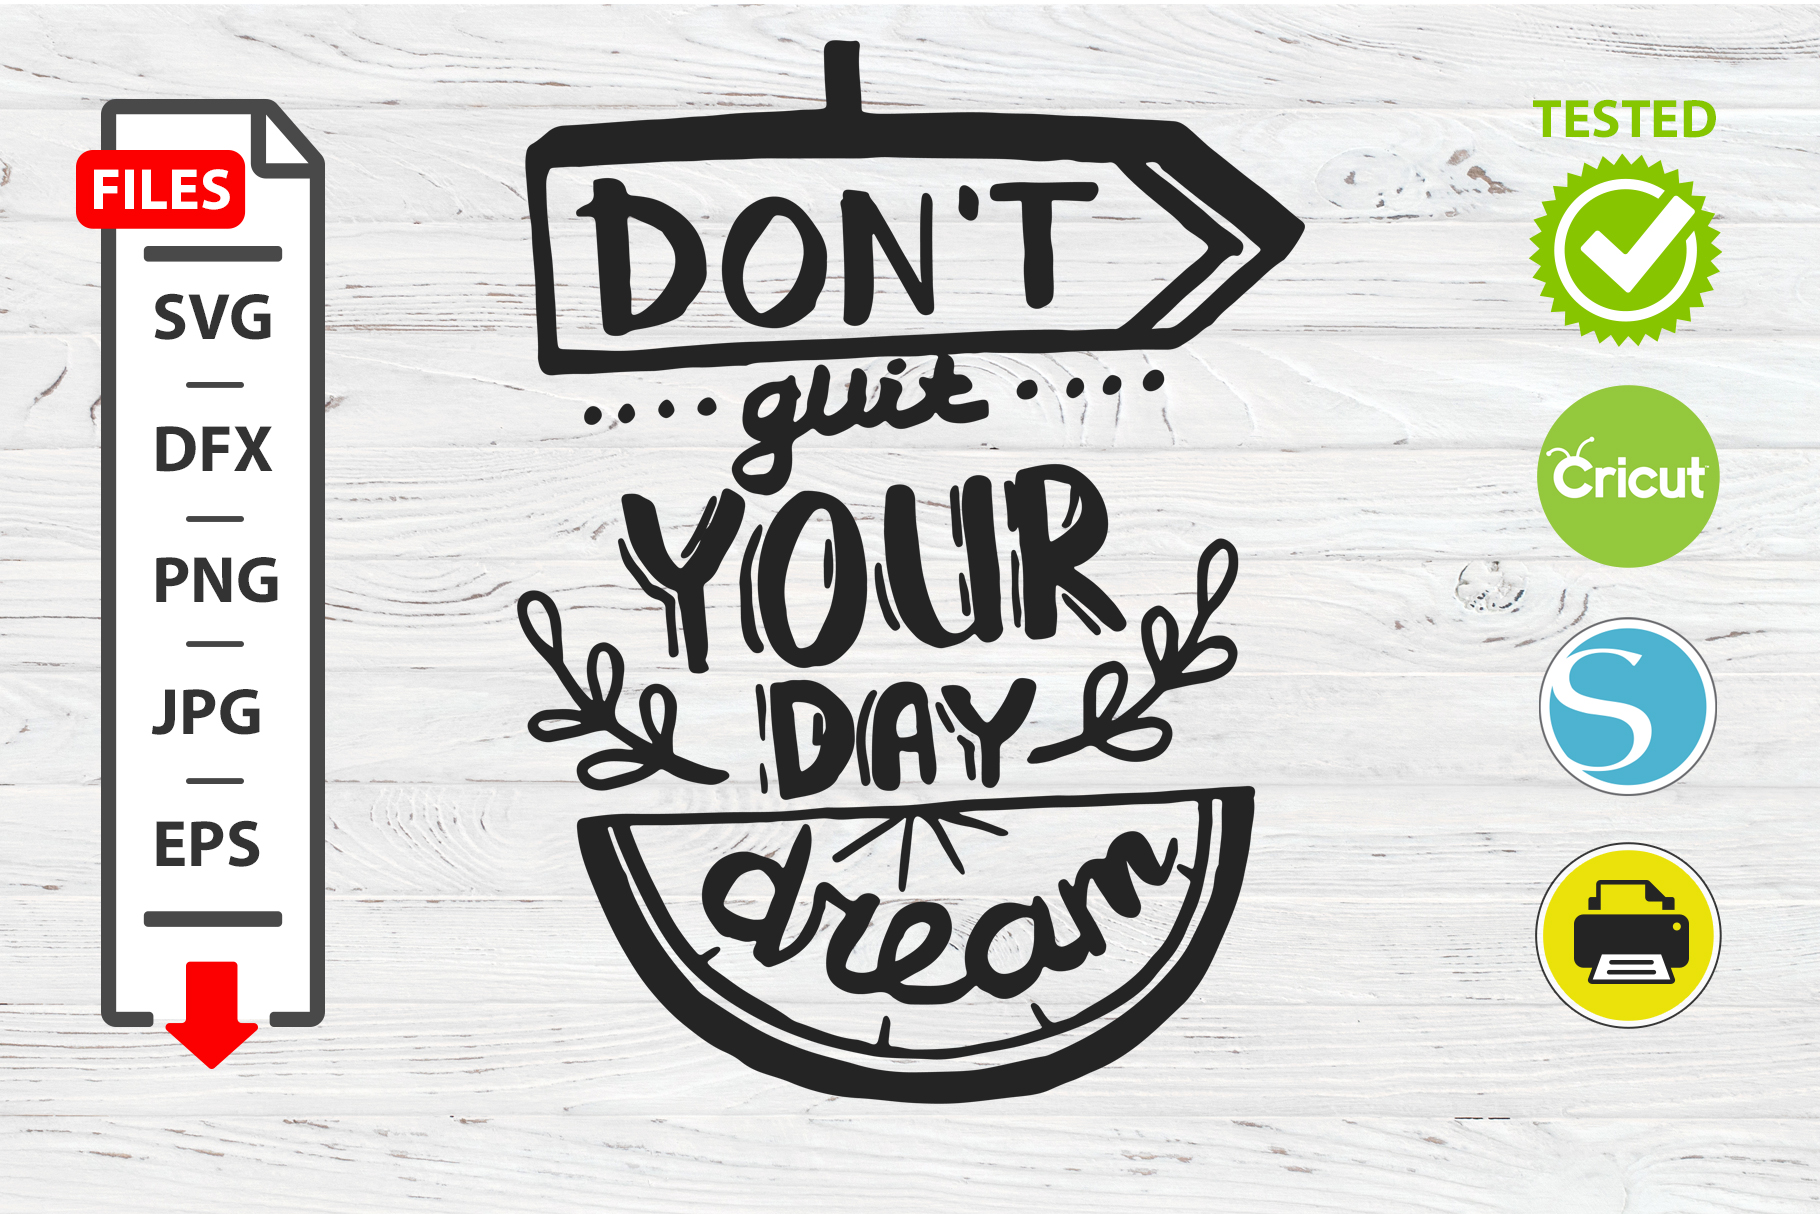 Don't quit your day dream motivational quote SVG Cricut example image 1